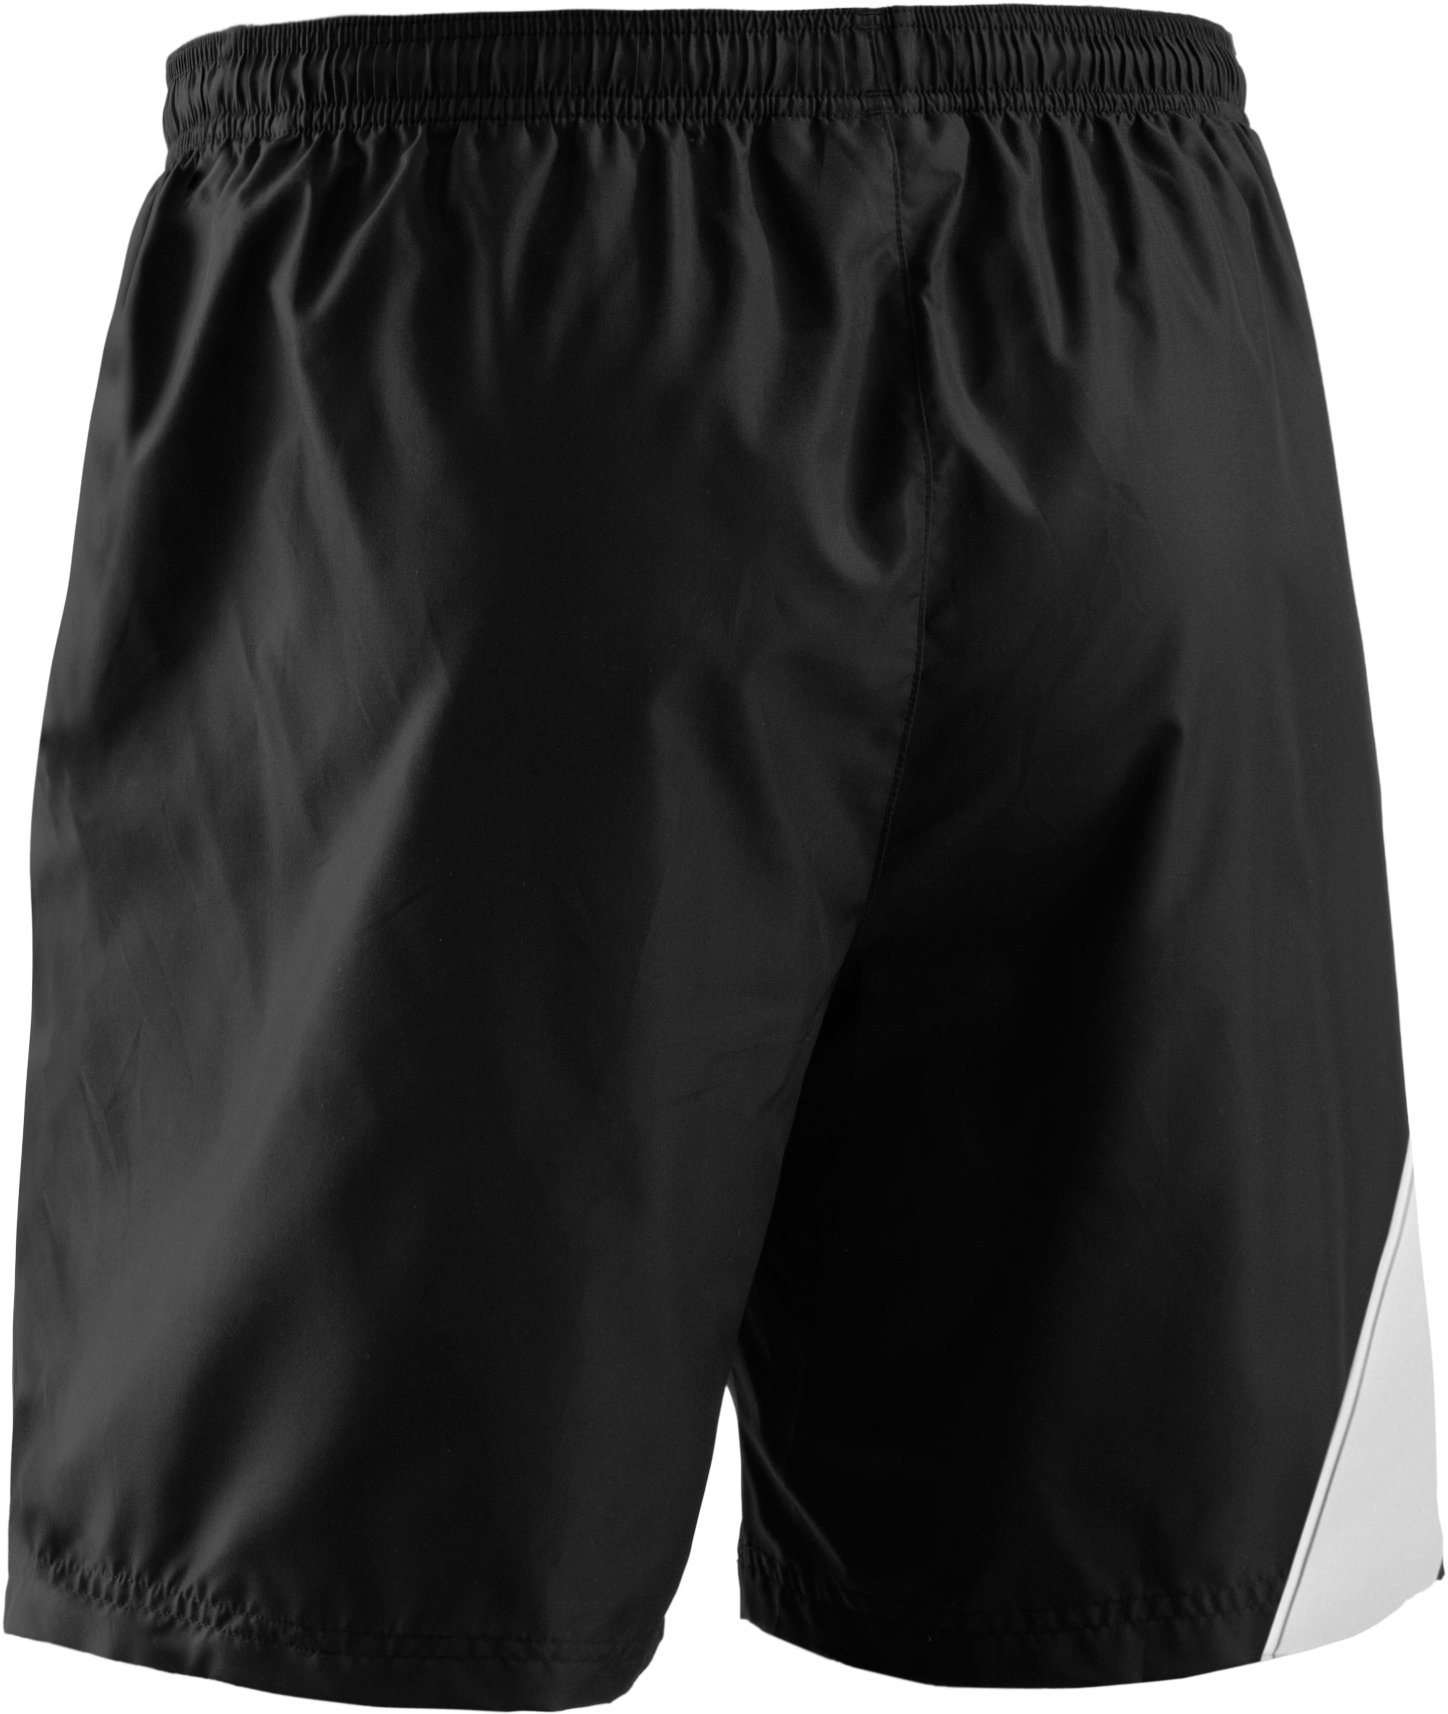 "Men's UA Chaos 7.5"" Soccer Shorts, Black , undefined"